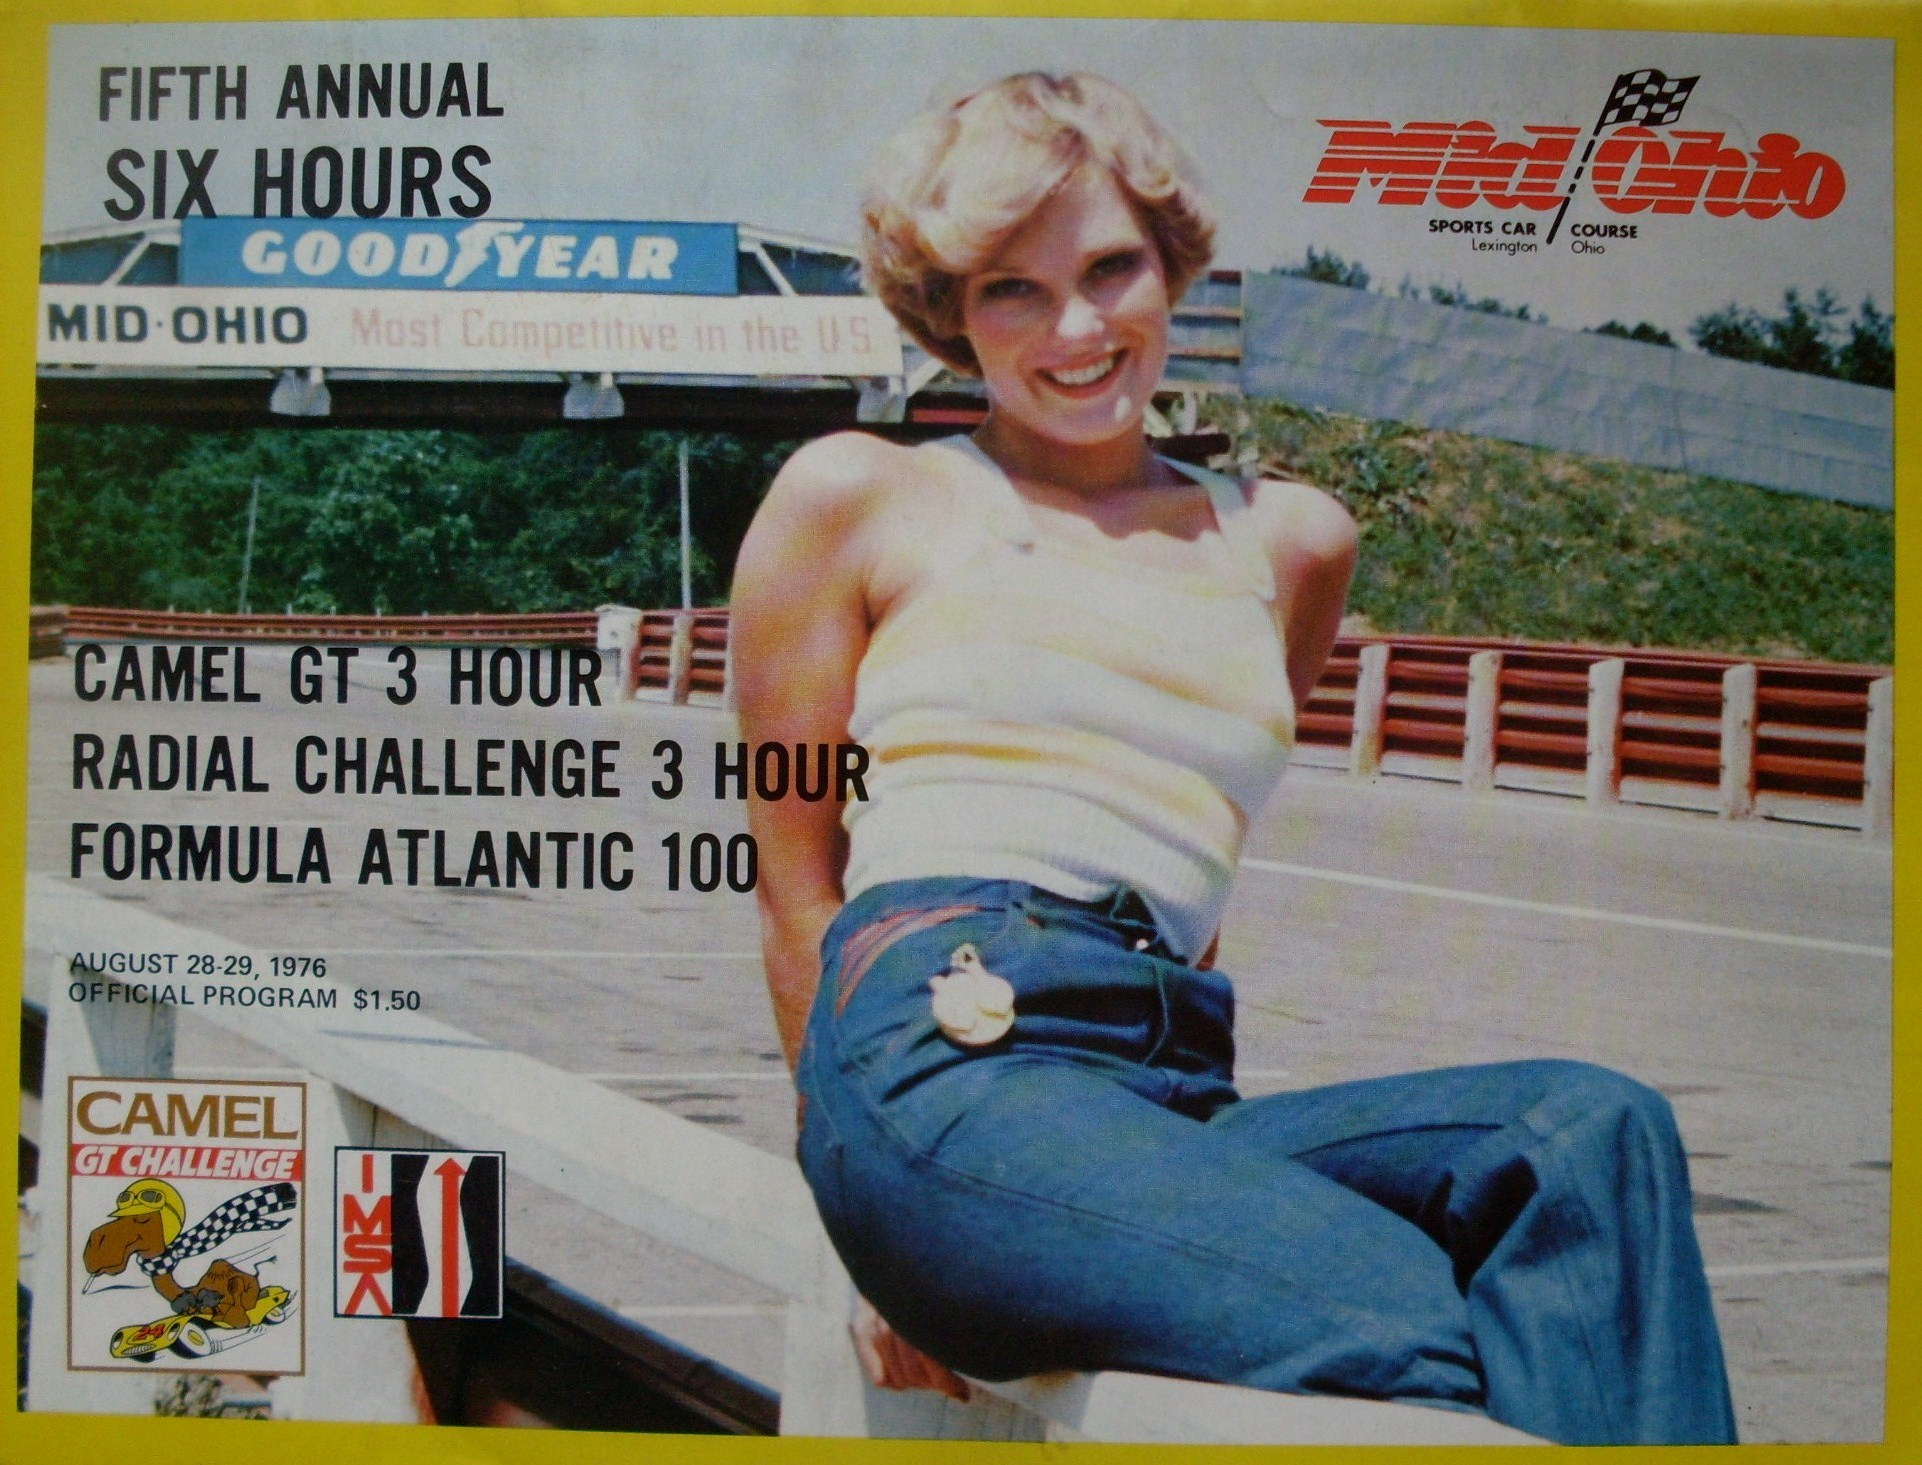 Mid Ohio Sportscar Course >> 1976 IMSA GT Championship Programmes | The Motor Racing Programme Covers Project